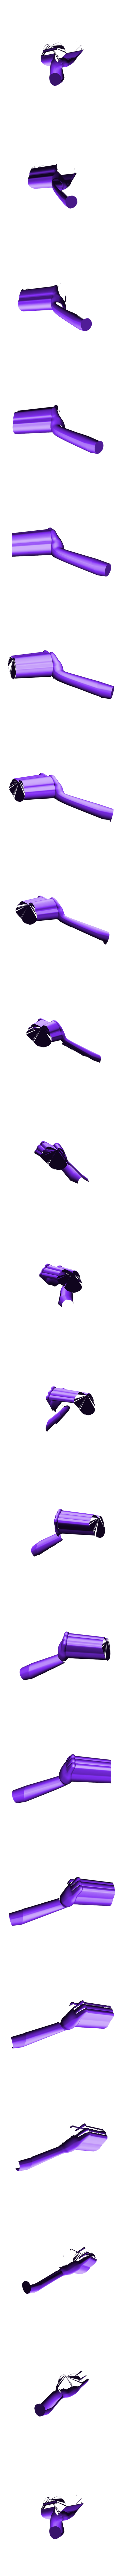 arm_right.stl Download free STL file Lakitu from Mario games - Multi-color • Object to 3D print, bpitanga